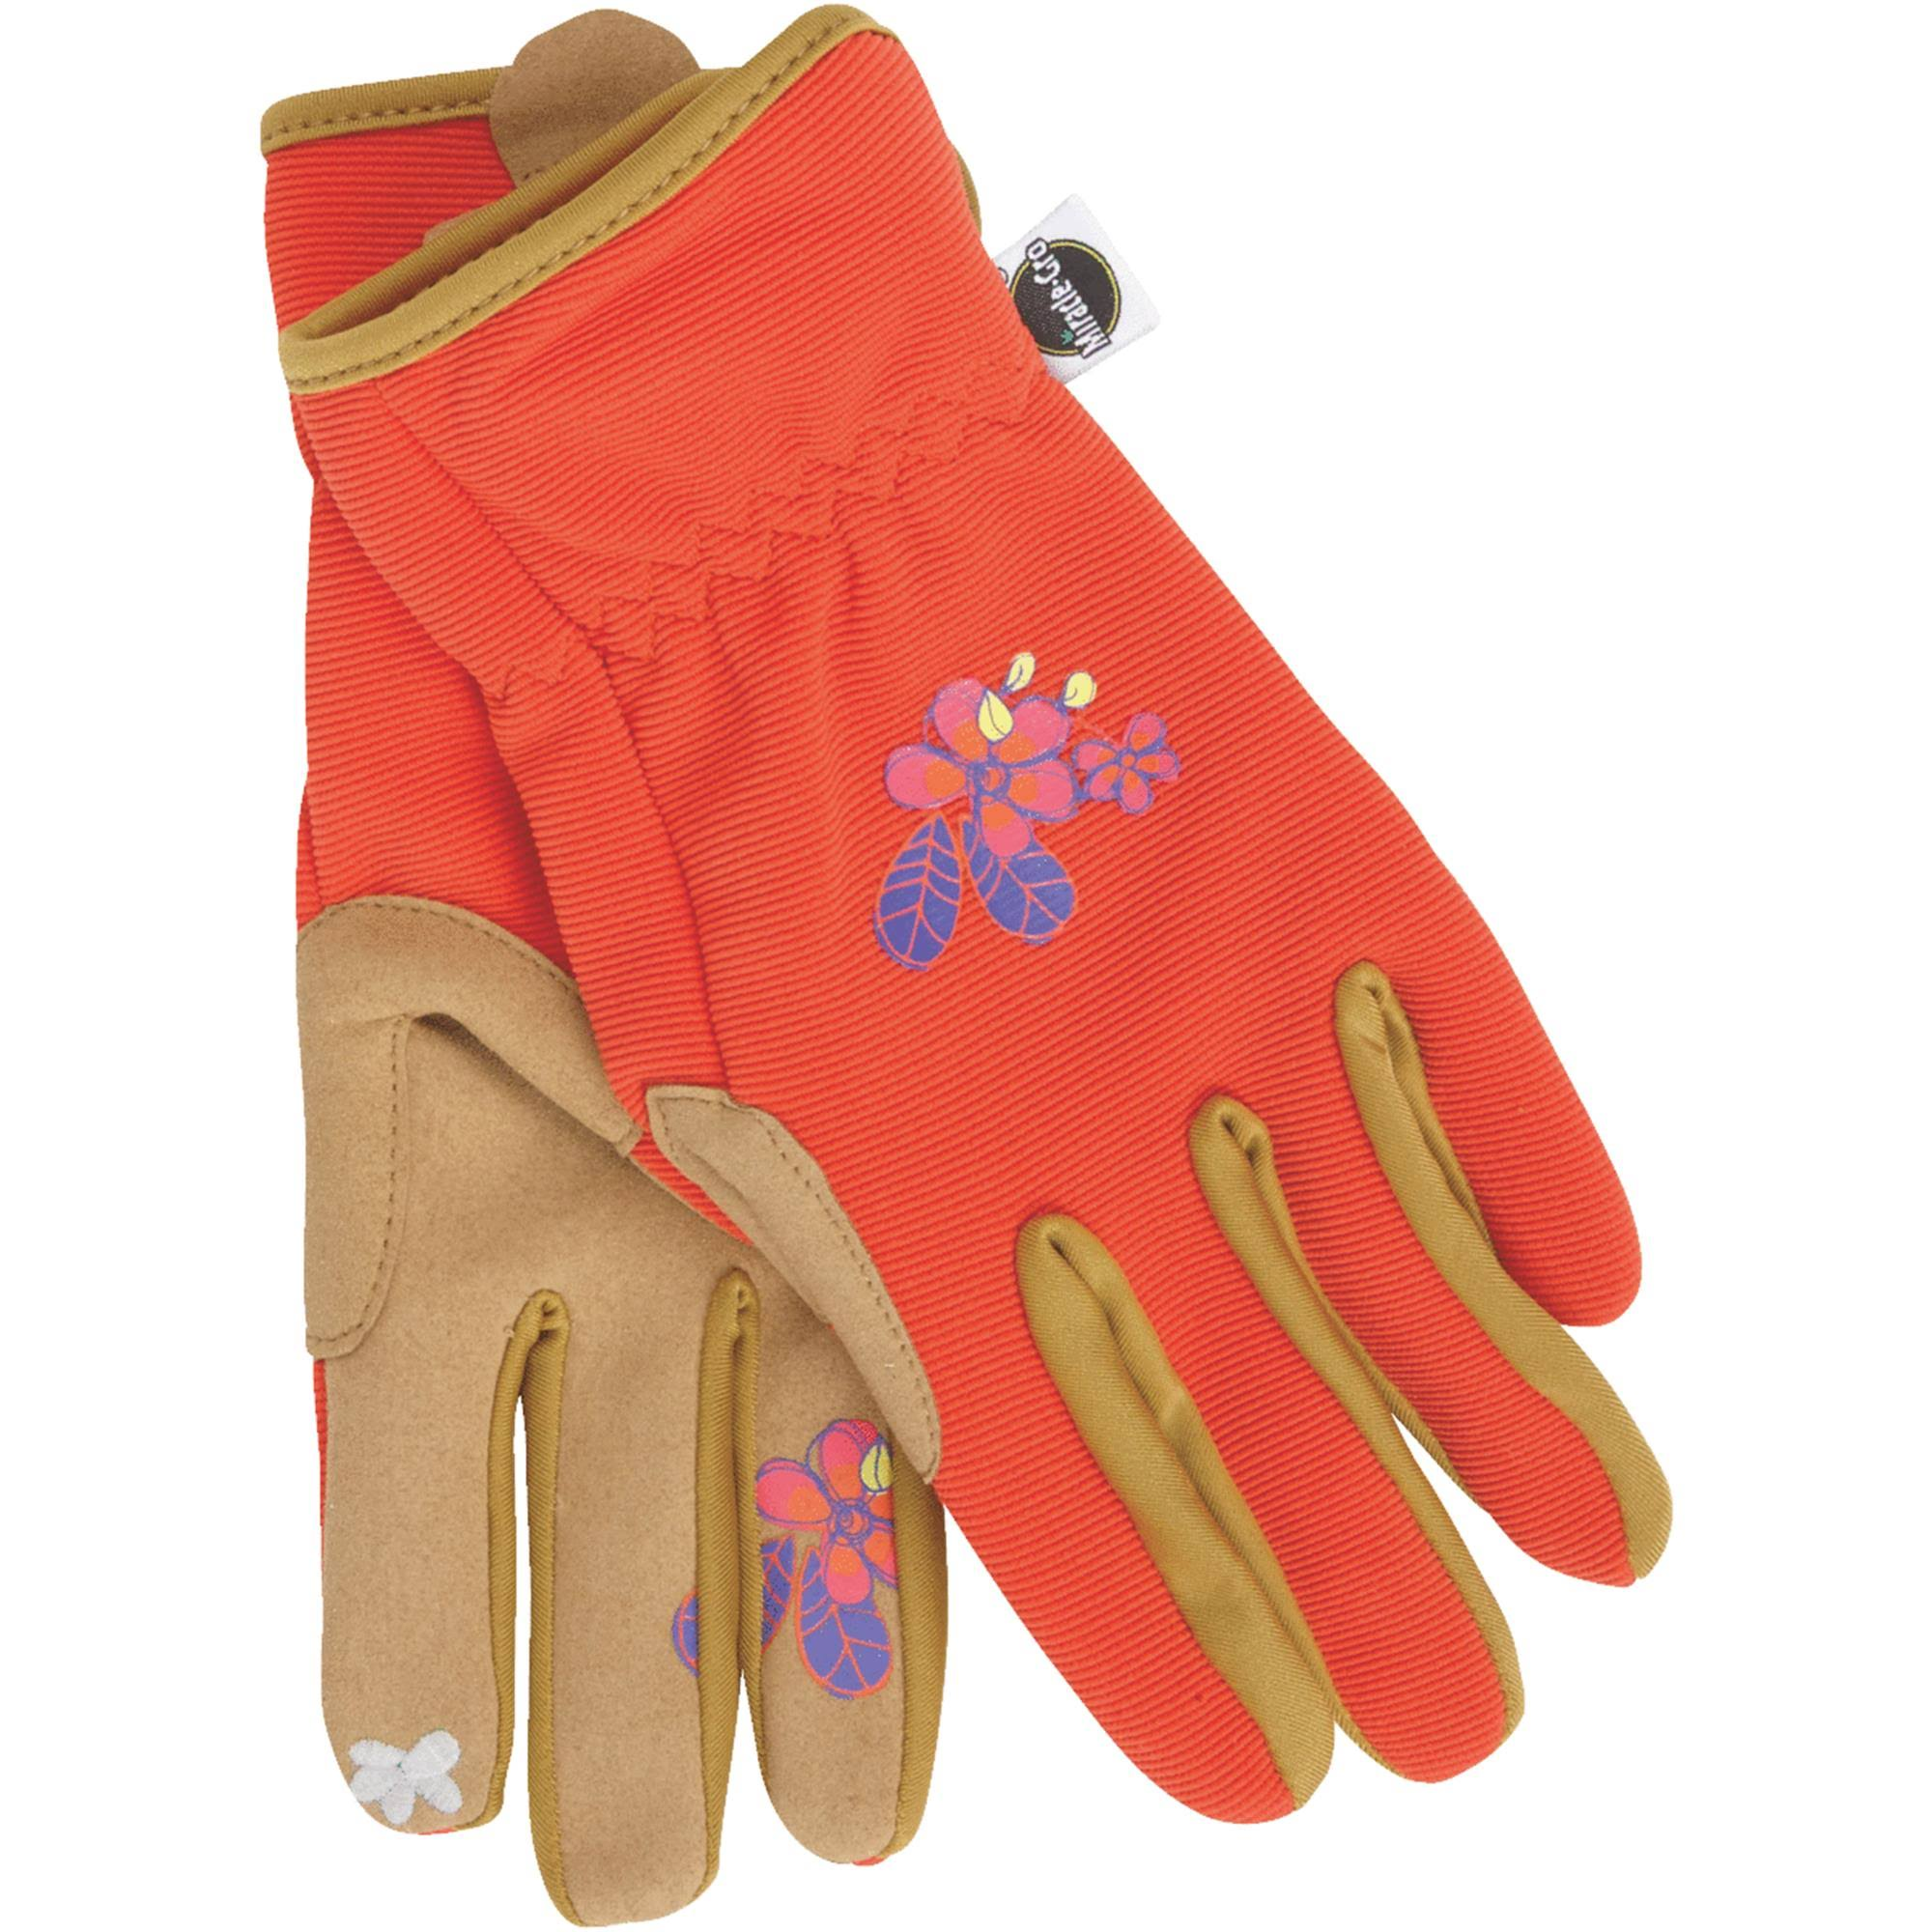 Miracle-Gro Garden Glove - Synthetic Leather